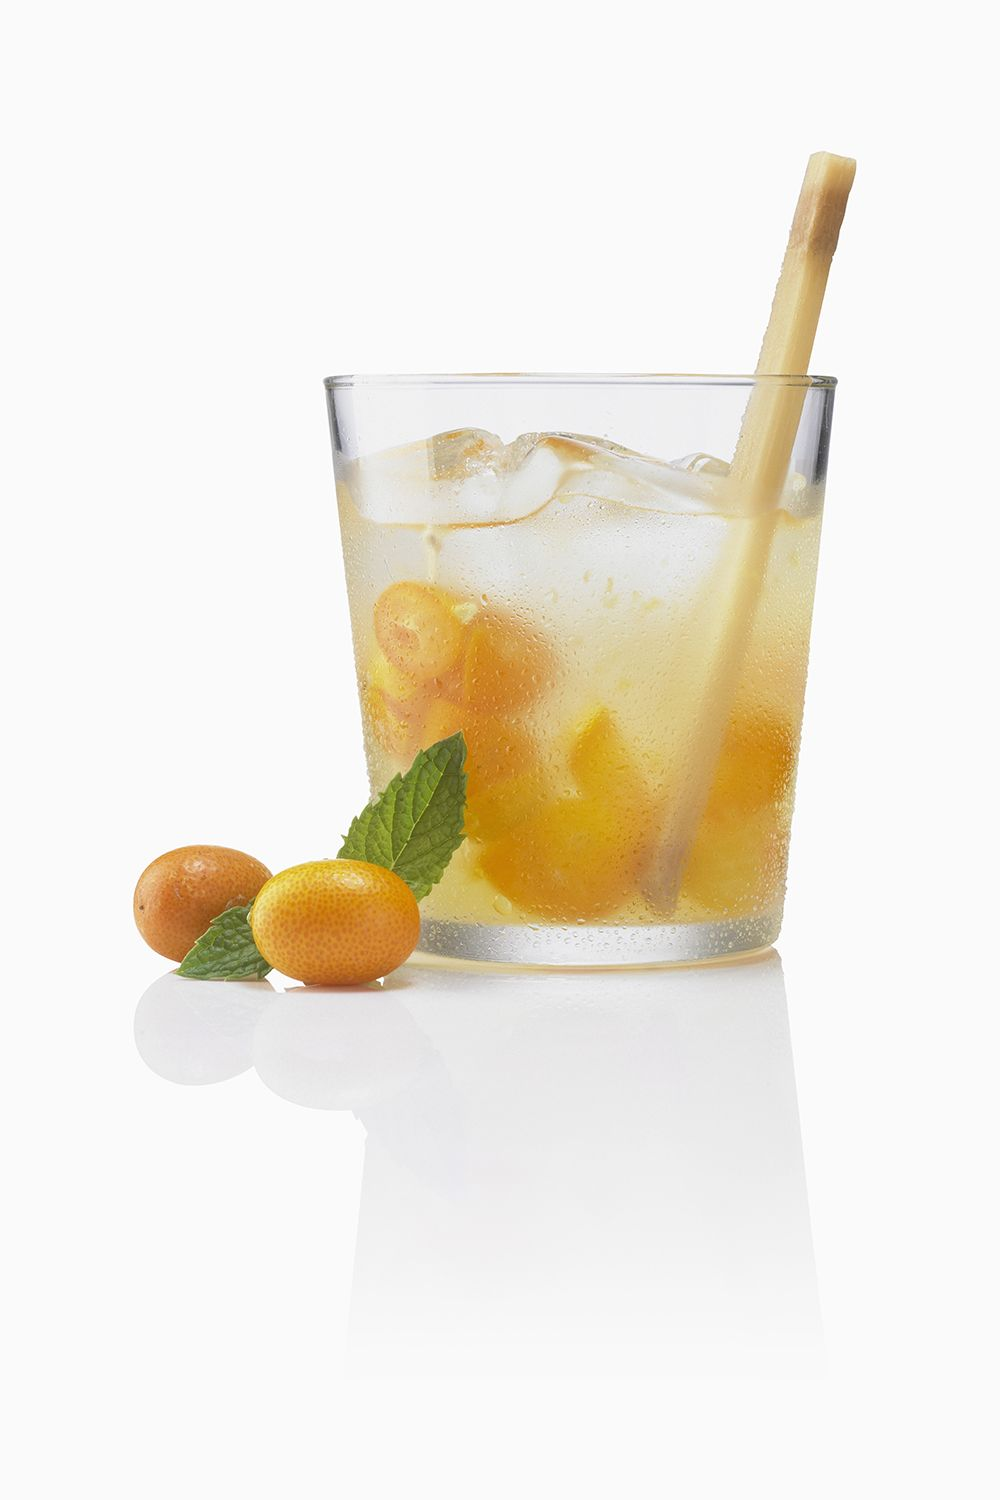 "<p><strong>Ingredients: </strong></p><p>2 parts Grey Goose Original</p><p>½ parts Grand Marnier</p><p>¼ squeeze Lime</p><p>2 tsps Demerara Brown Sugar</p><p>6 Kumquats</p><p><strong>Directions:</strong></p><p>Cut all the kumquats in half and put all the rest of the ingredients into a highball glass. Muddle all and add crushed ice. Float Grand Marnier.</p><p><em>From <a href=""https://www.greygoose.com/us/en/cocktail-recipes/cocktaildetail.17230.html"" target=""_blank"">Grey Goose</a>.</em></p>"